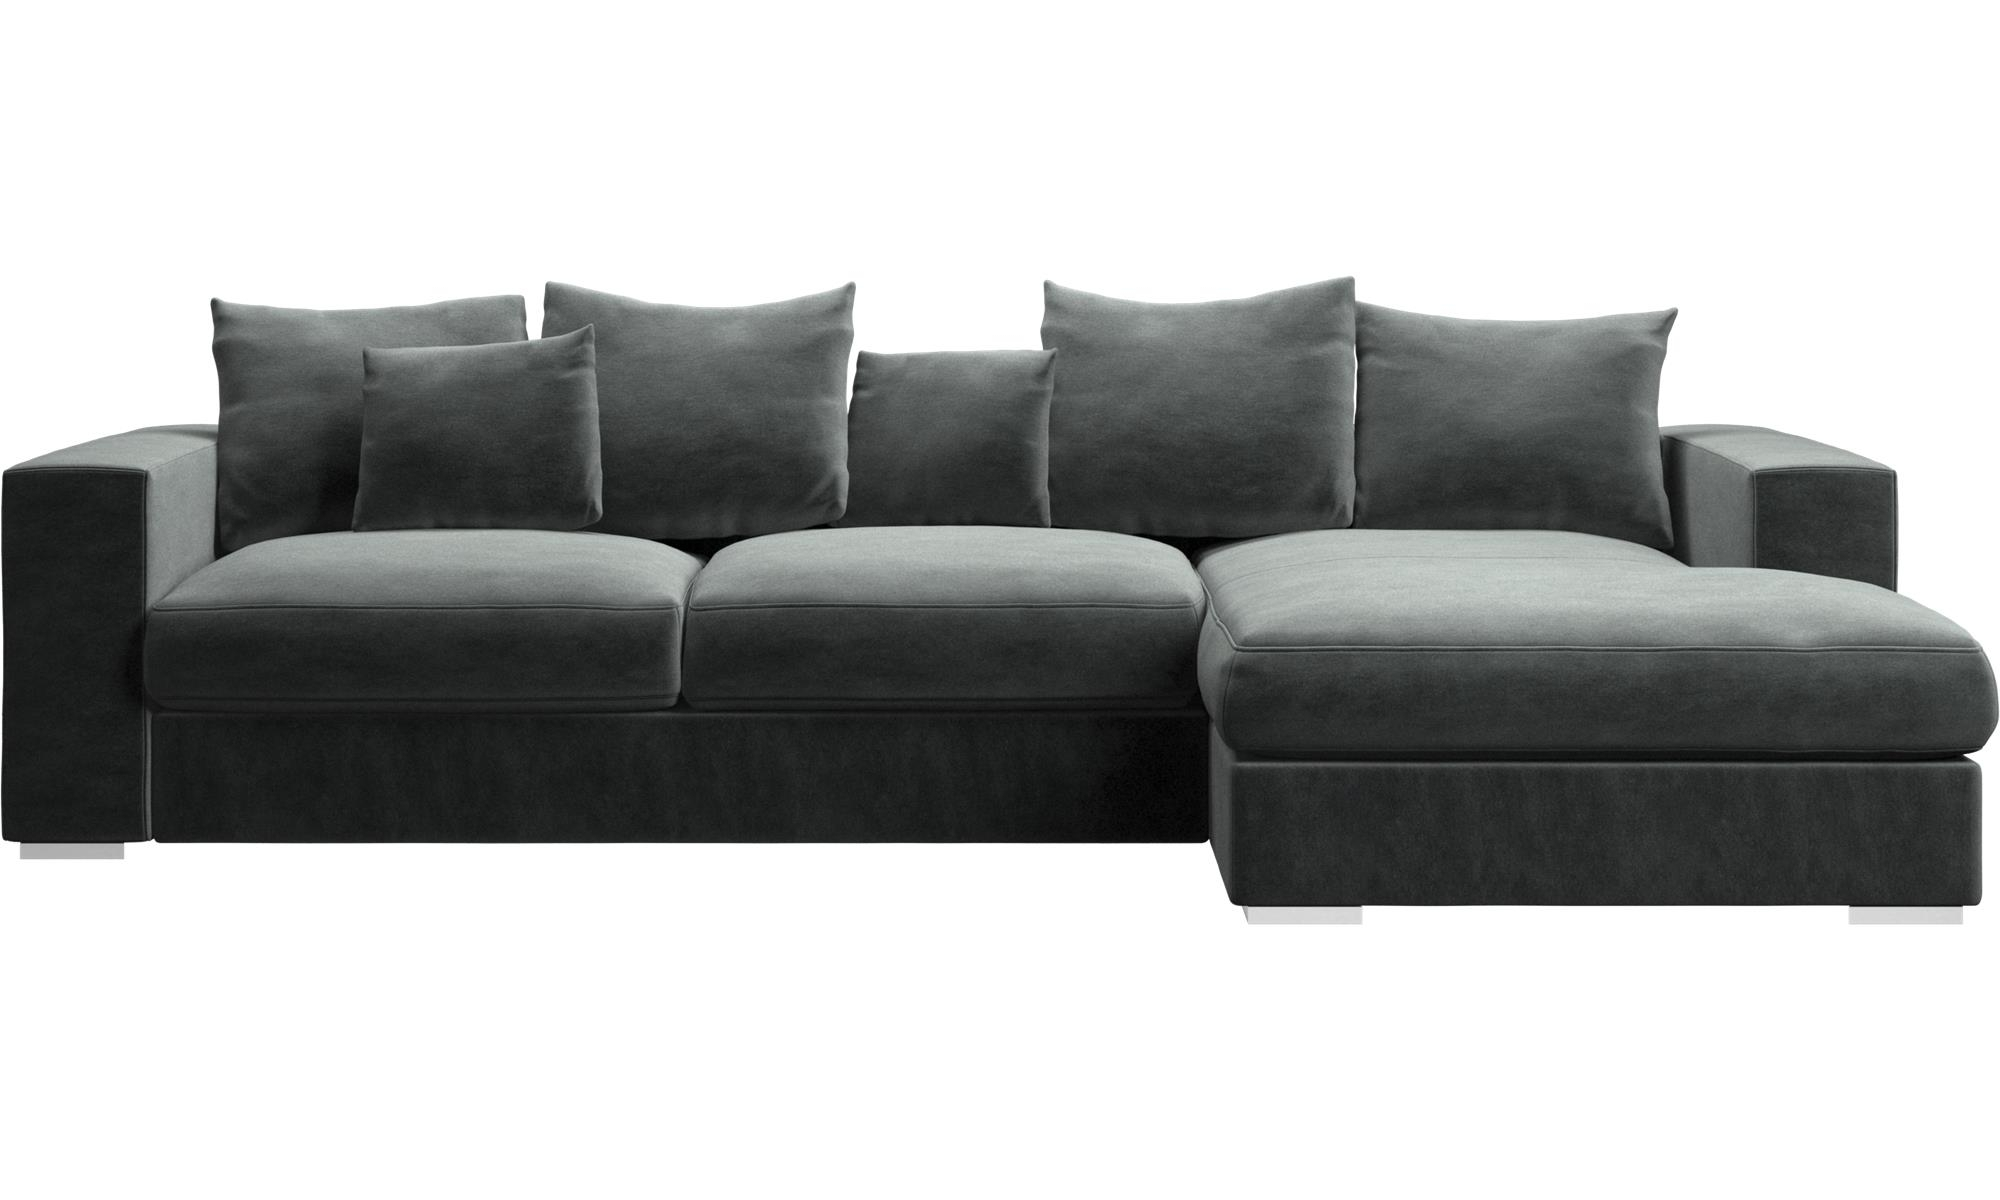 Fashionable Chaise Lounge Couches Pertaining To Chaise Lounge Sofas – Cenova Sofa With Resting Unit – Boconcept (View 6 of 15)